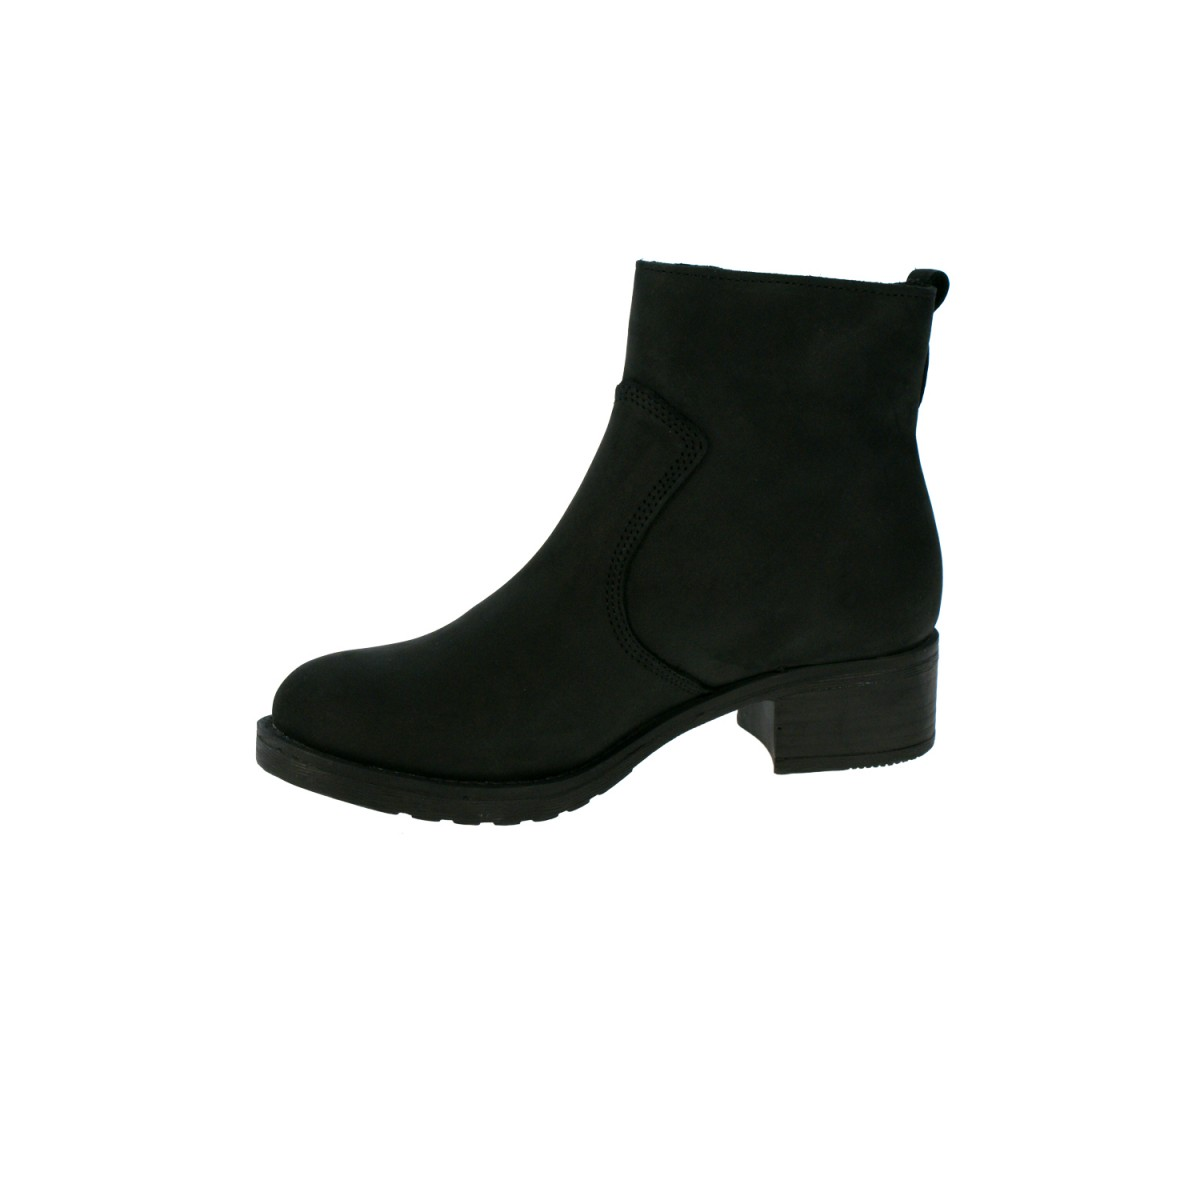 Pavement Louise Wool Black-35